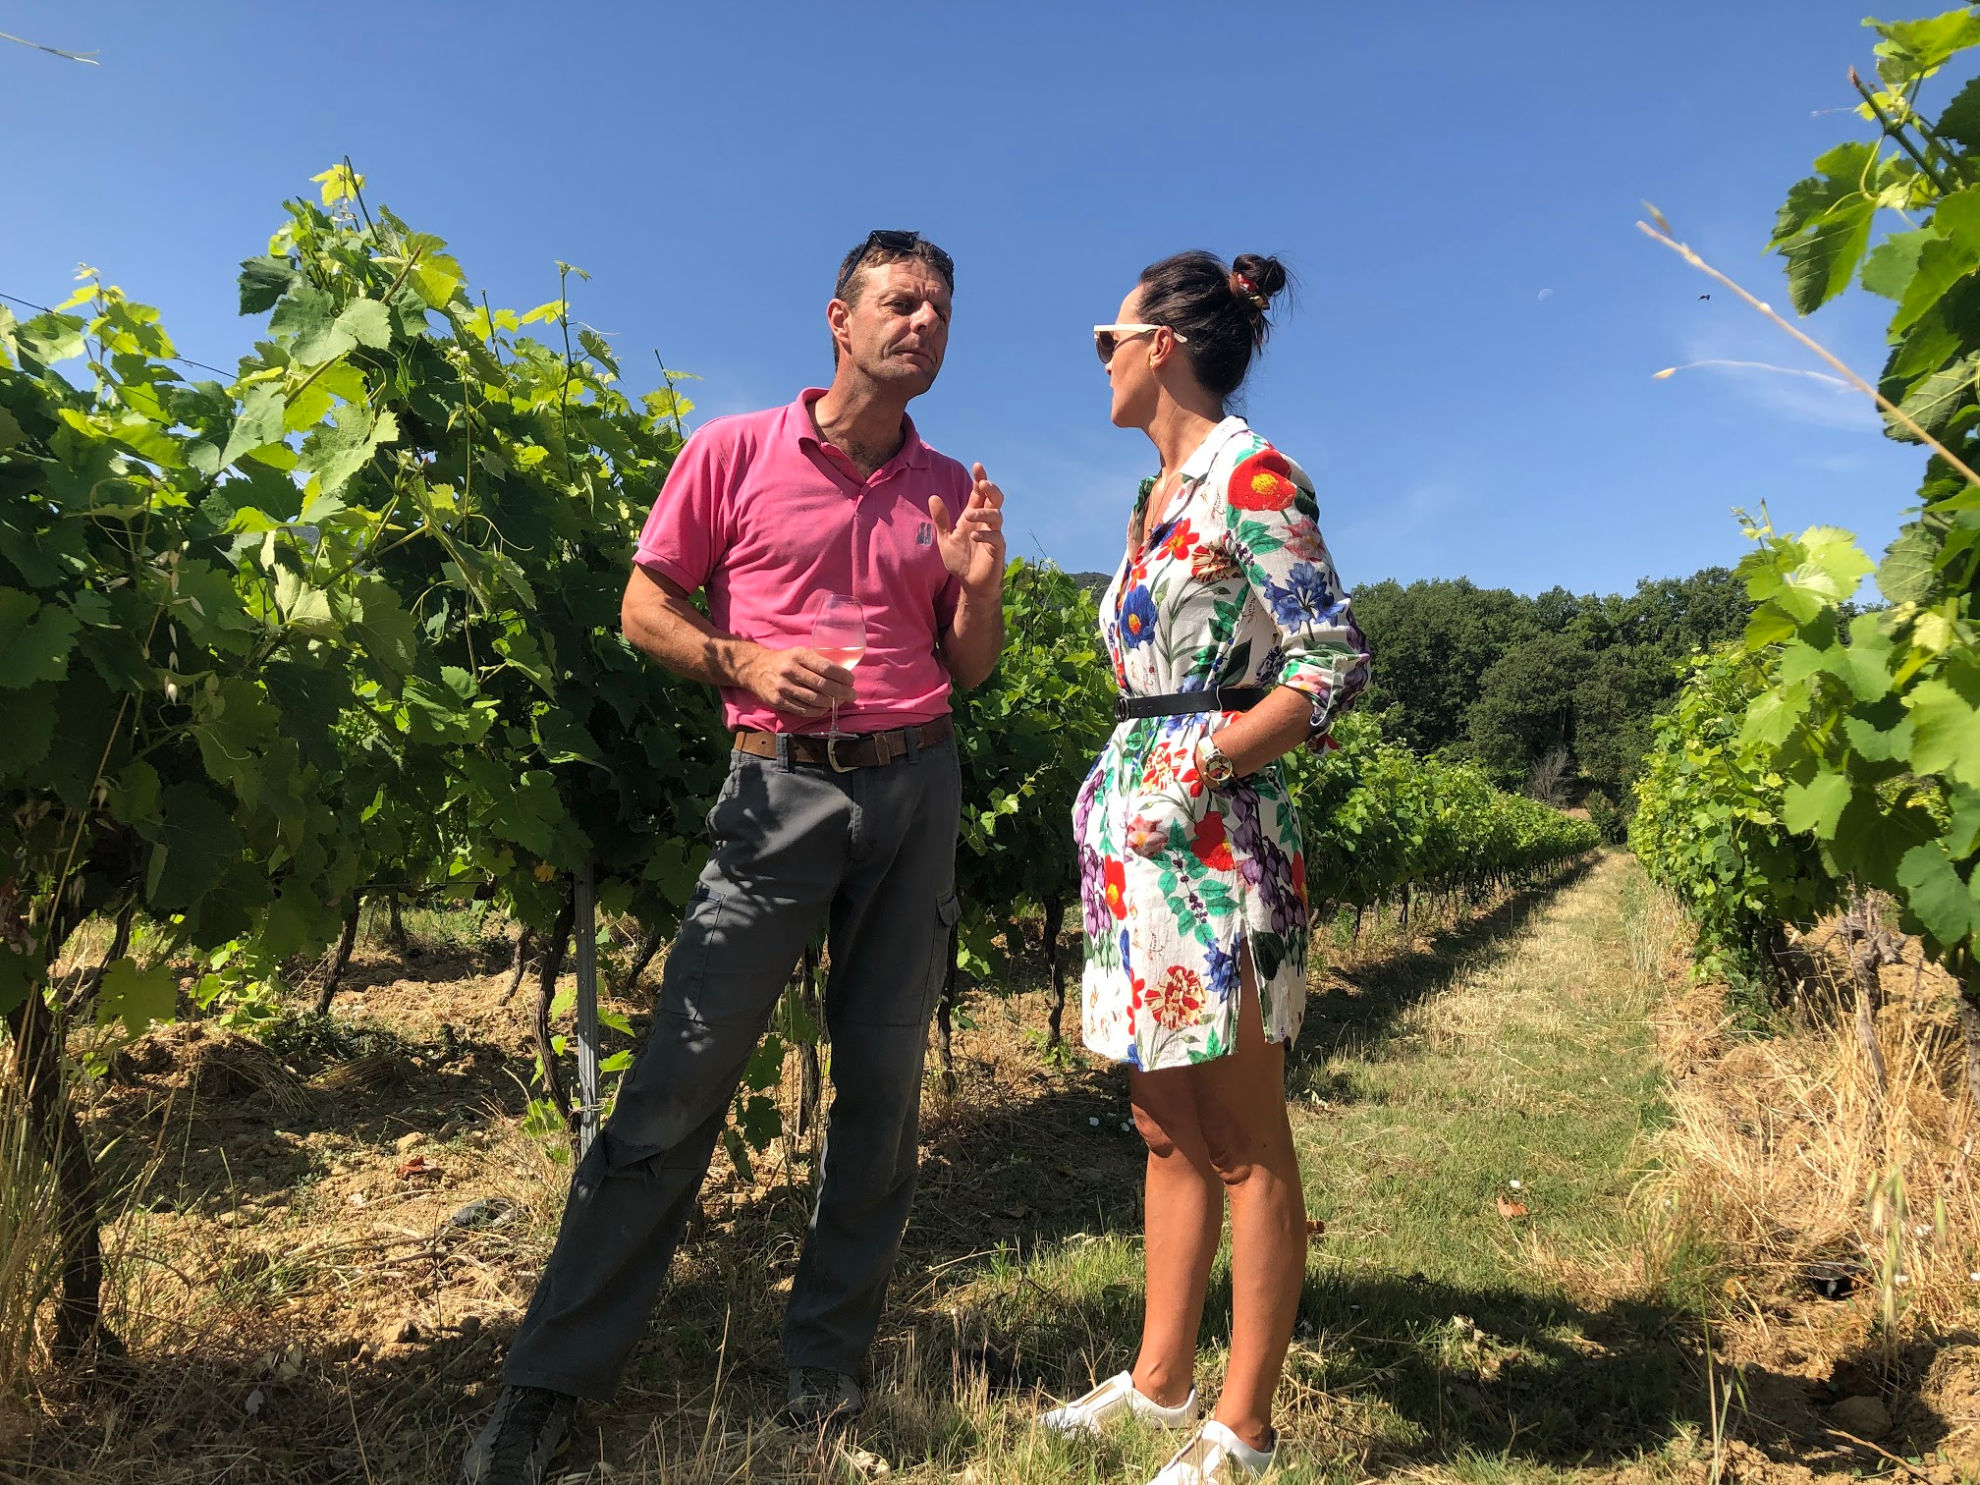 Alexandre Samour explaining to Sheelagh Tinney about the different grapes used in his wine at the Domaine Des Jeanne Vineyard